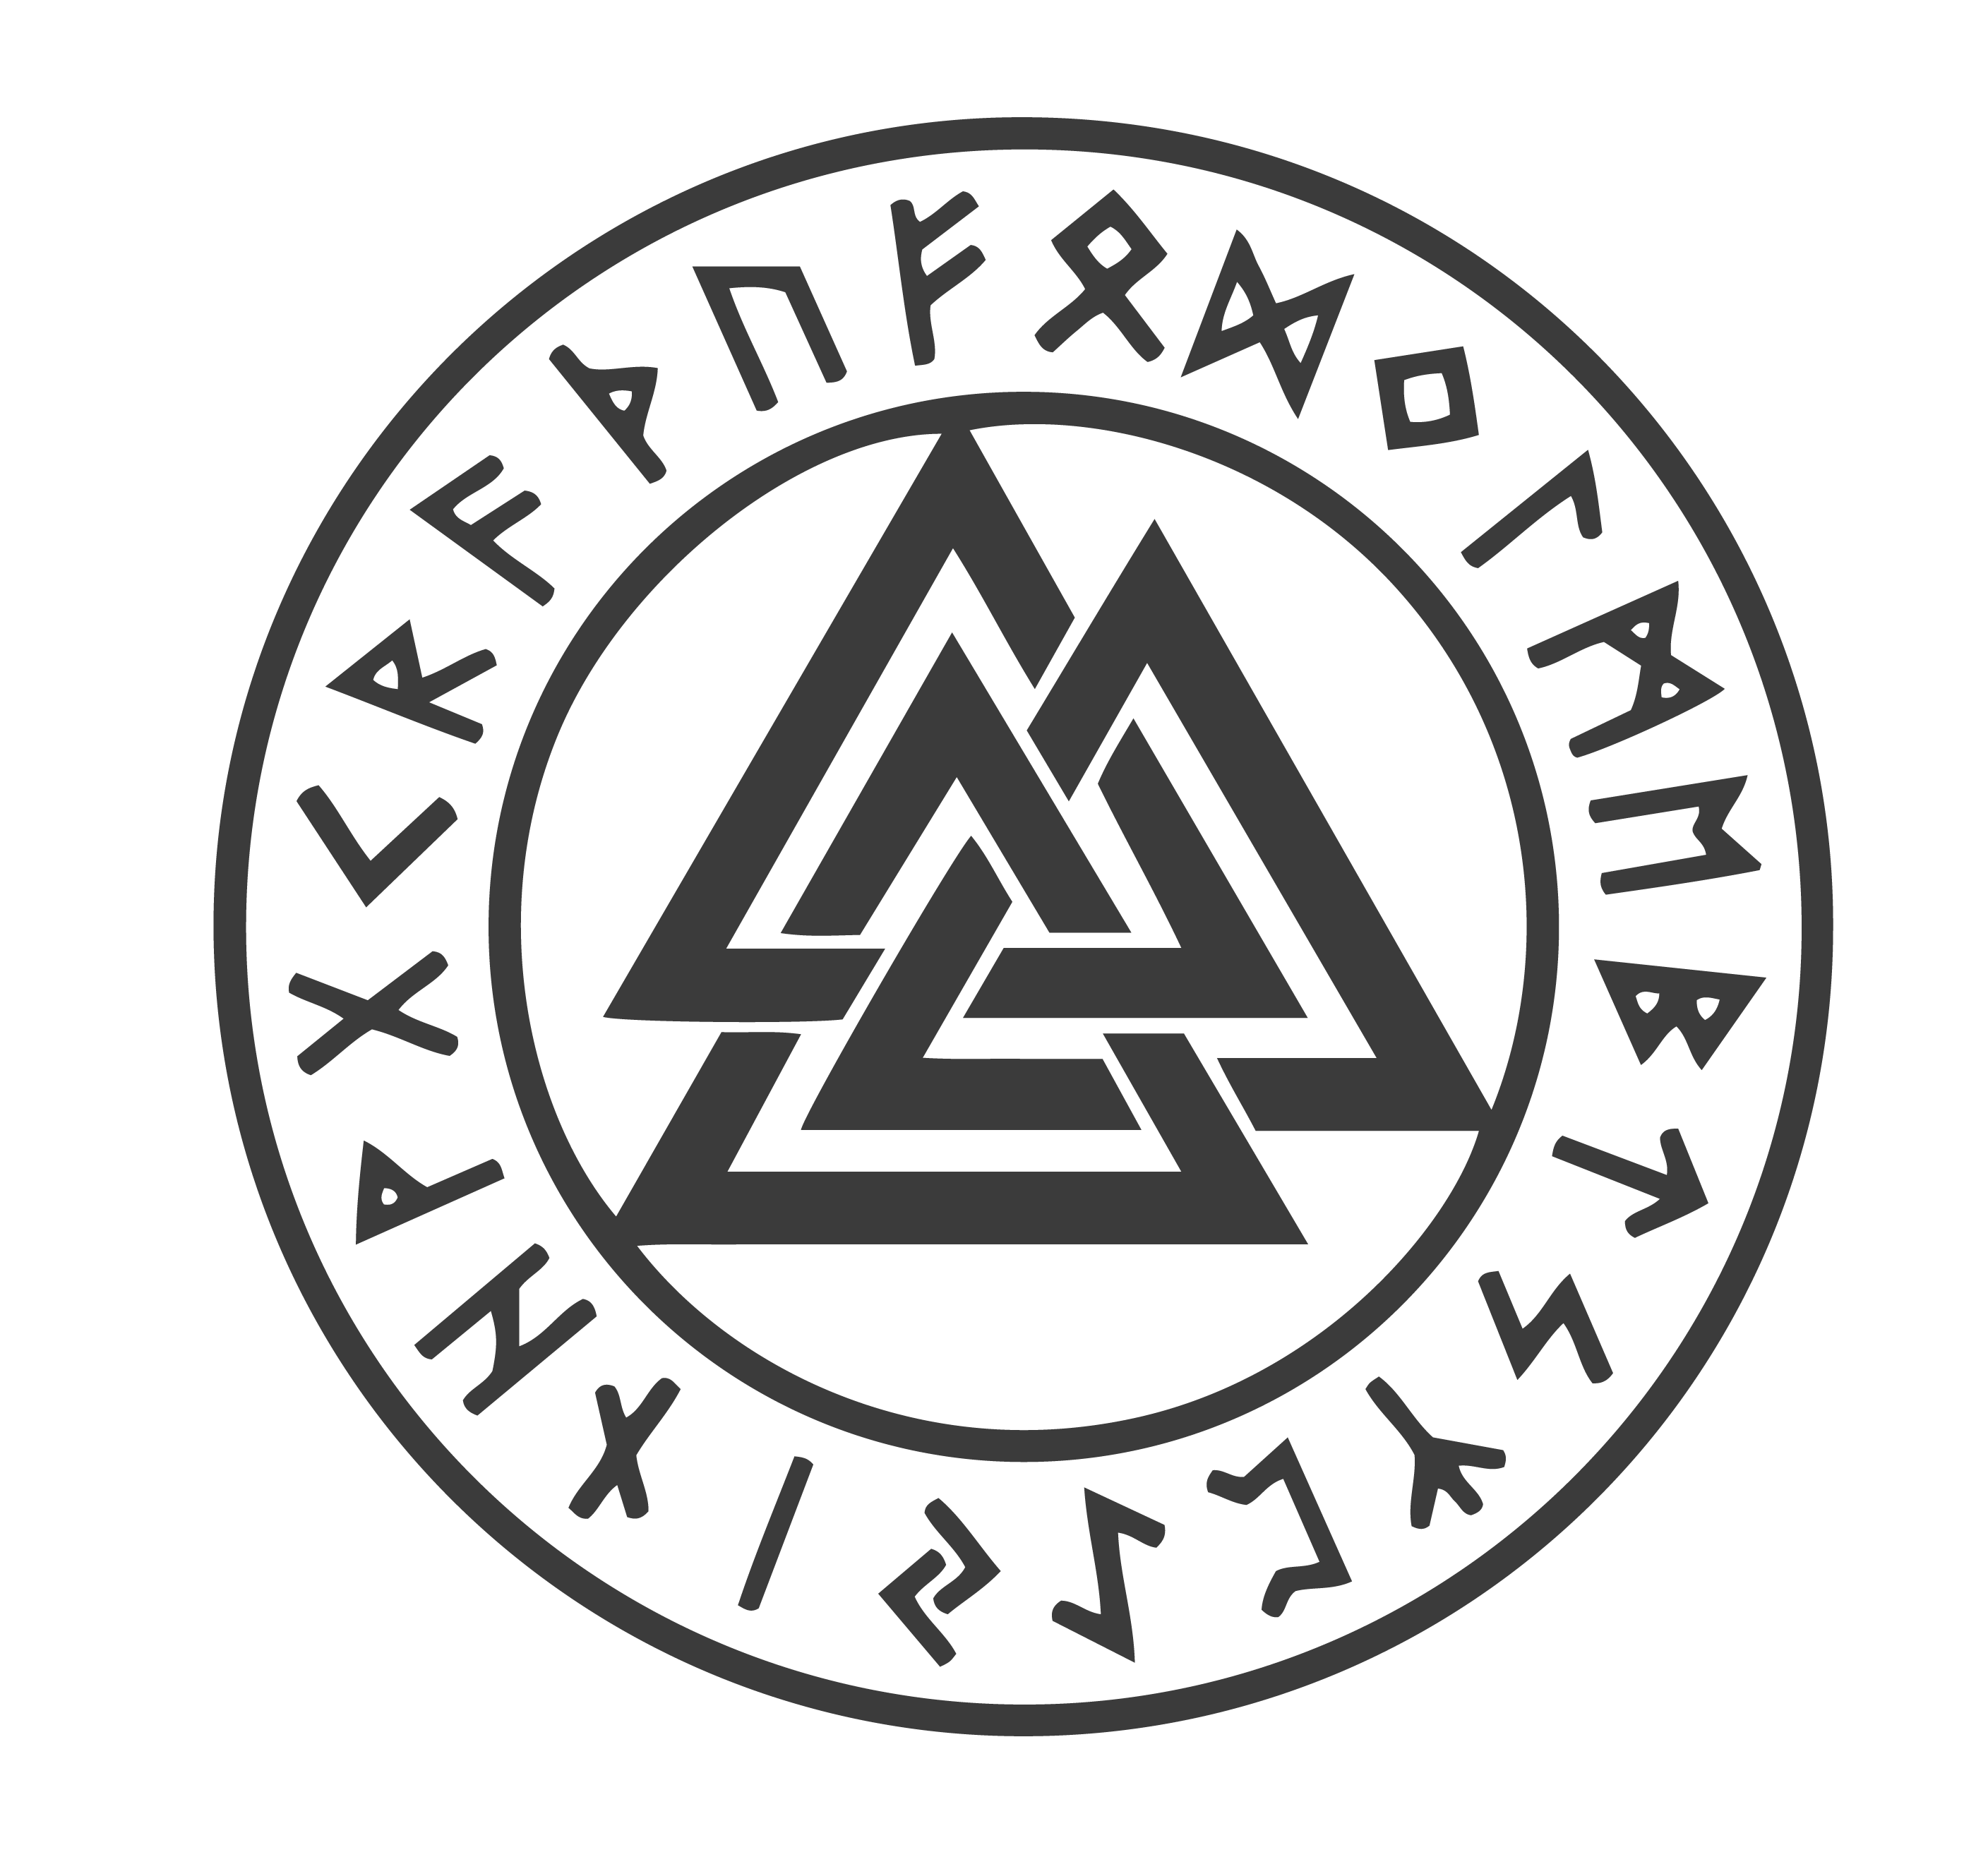 Valknut The Symbol Of Odin And Its Meaning In Norse Mythology